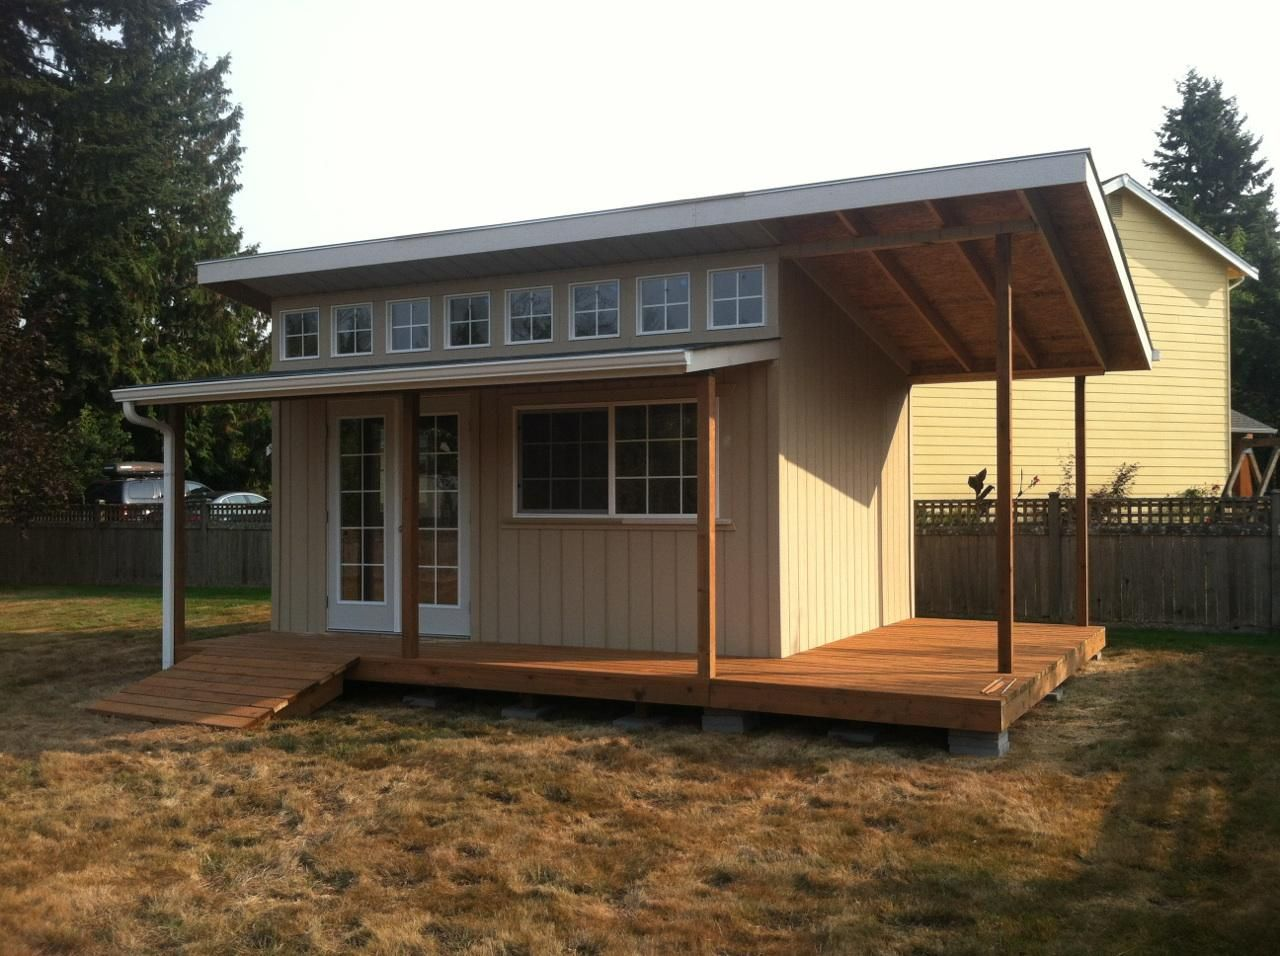 Slant Roof Style Custom Built Shed Storage Mother In